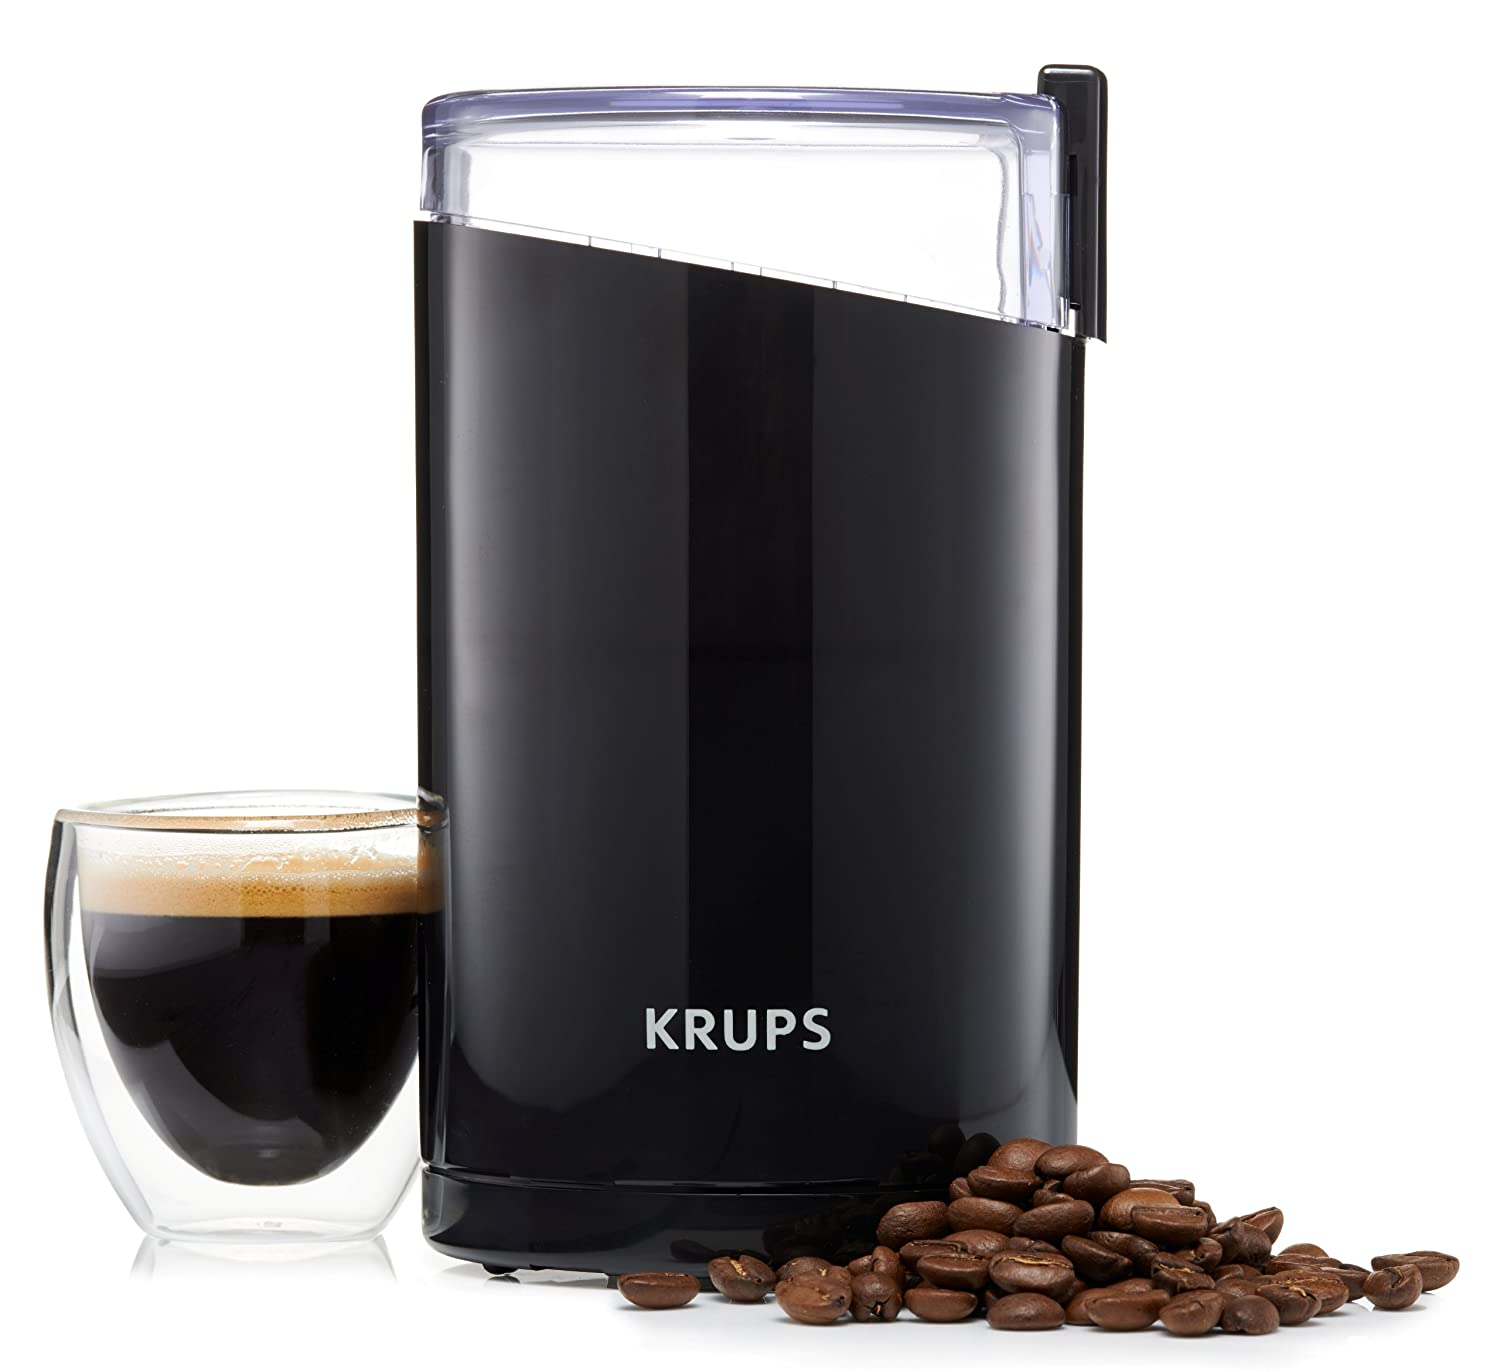 The Krups Twin Coffee Mill is an excellent coffee bean grinder and will cost you less than £25.